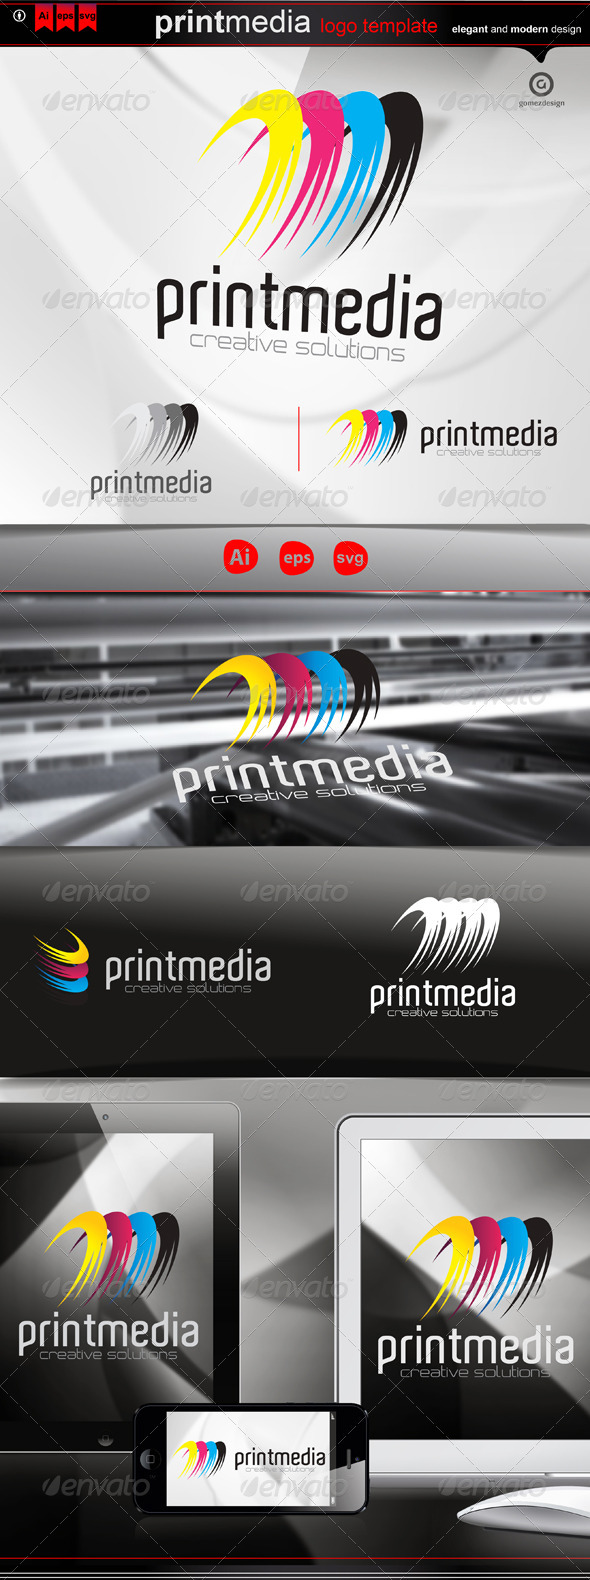 GraphicRiver Print Media 3373078